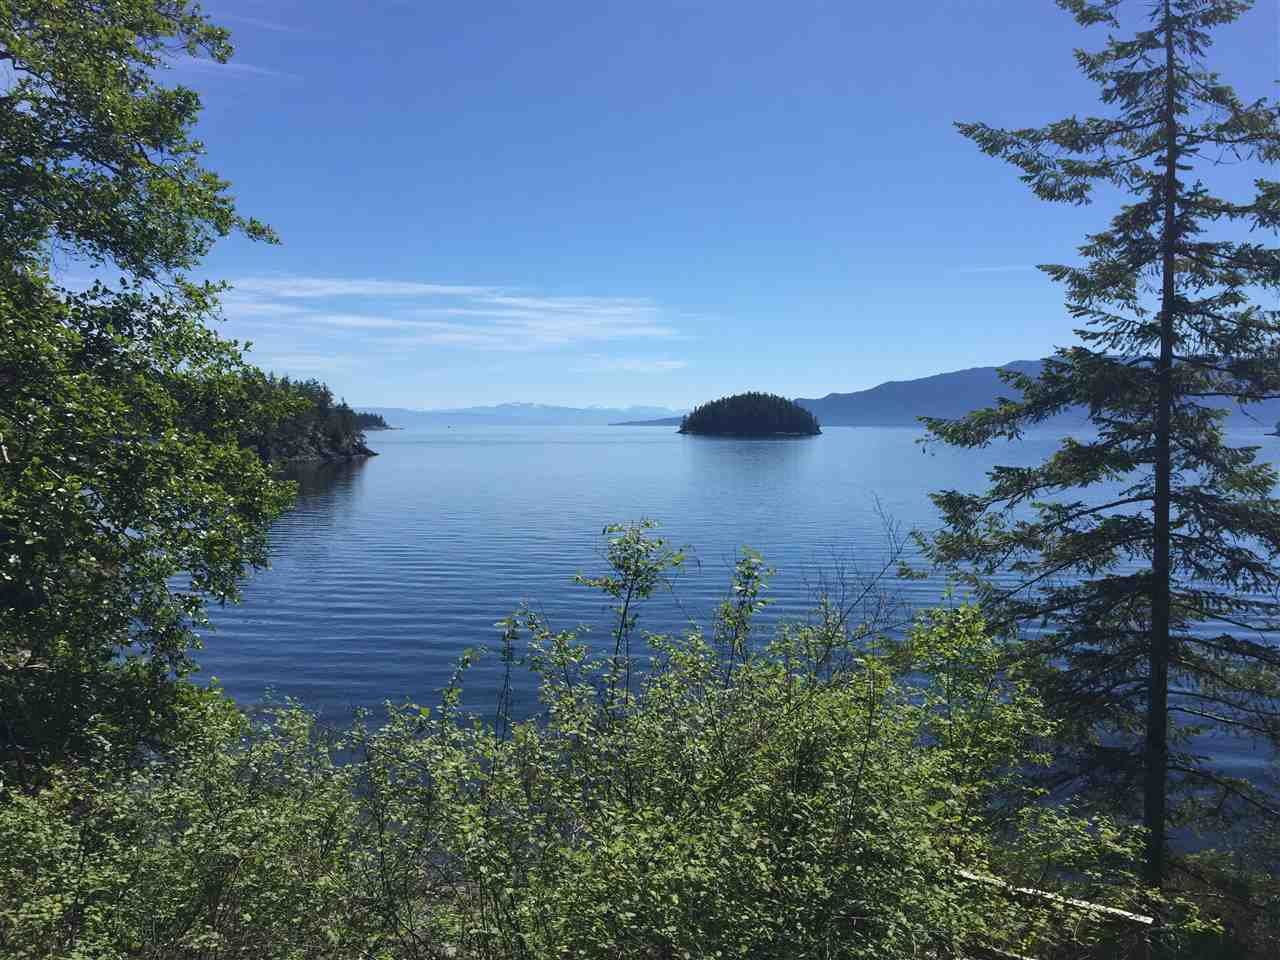 Main Photo: LOT 1 SEA OTTER ROAD in Pender Harbour: Pender Harbour Egmont Land for sale (Sunshine Coast)  : MLS®# R2088645